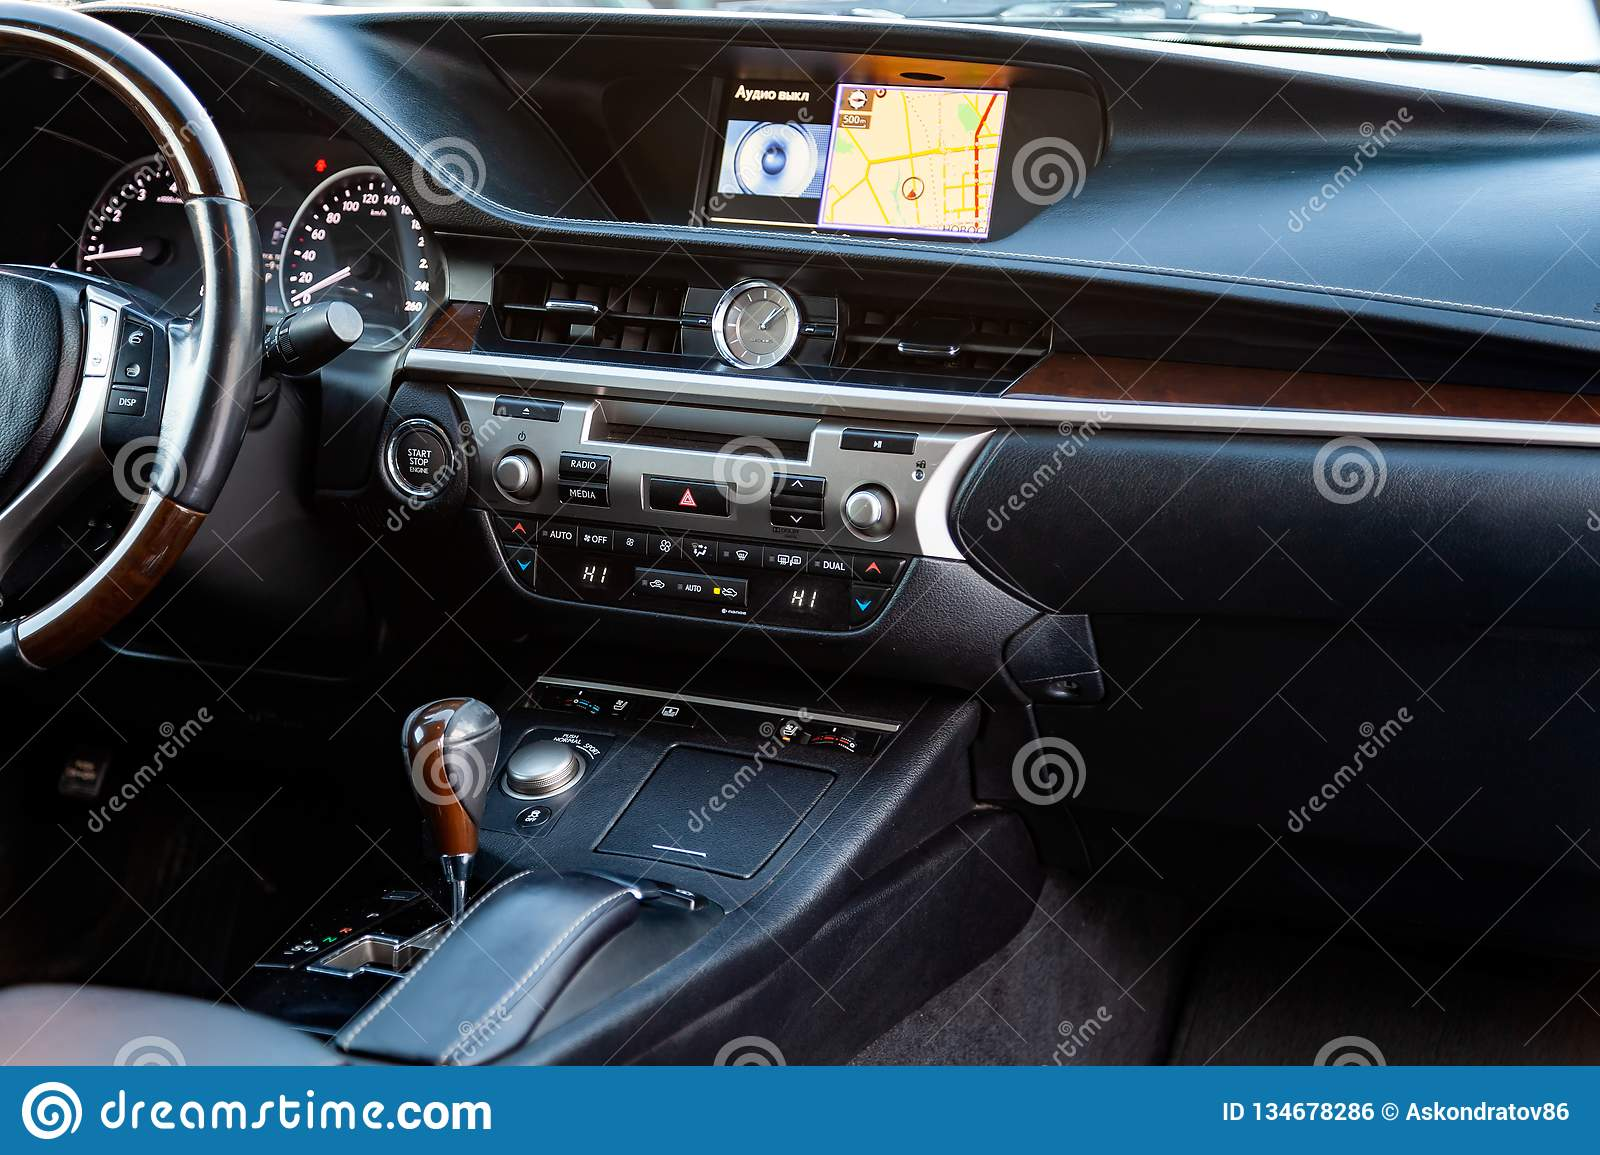 The Central Console Panel Inside A Black Car With Wooden And